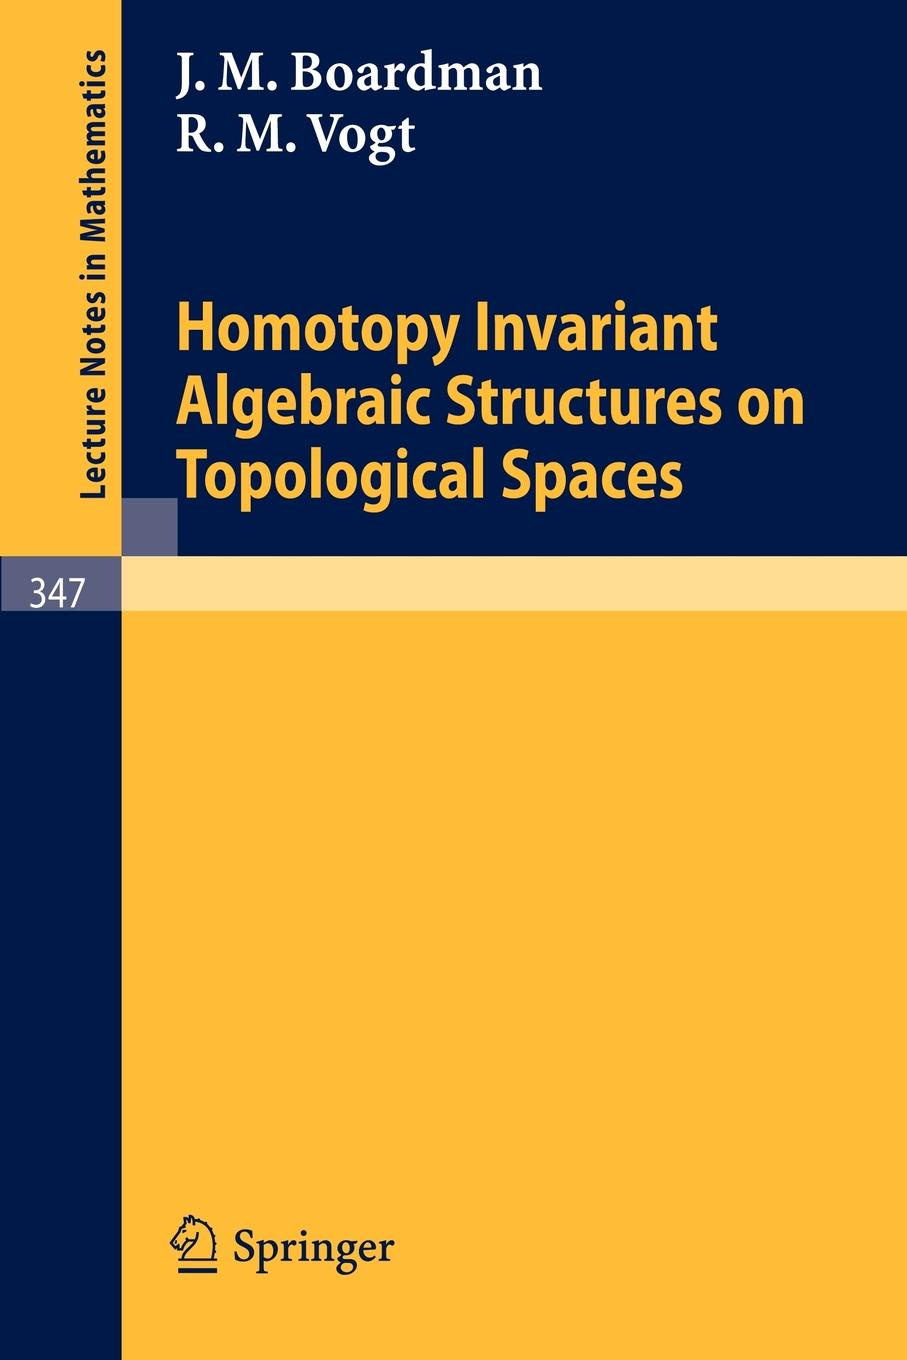 J. M. Boardman, R. M. Vogt Homotopy Invariant Algebraic Structures on Topological Spaces clarke m working spaces